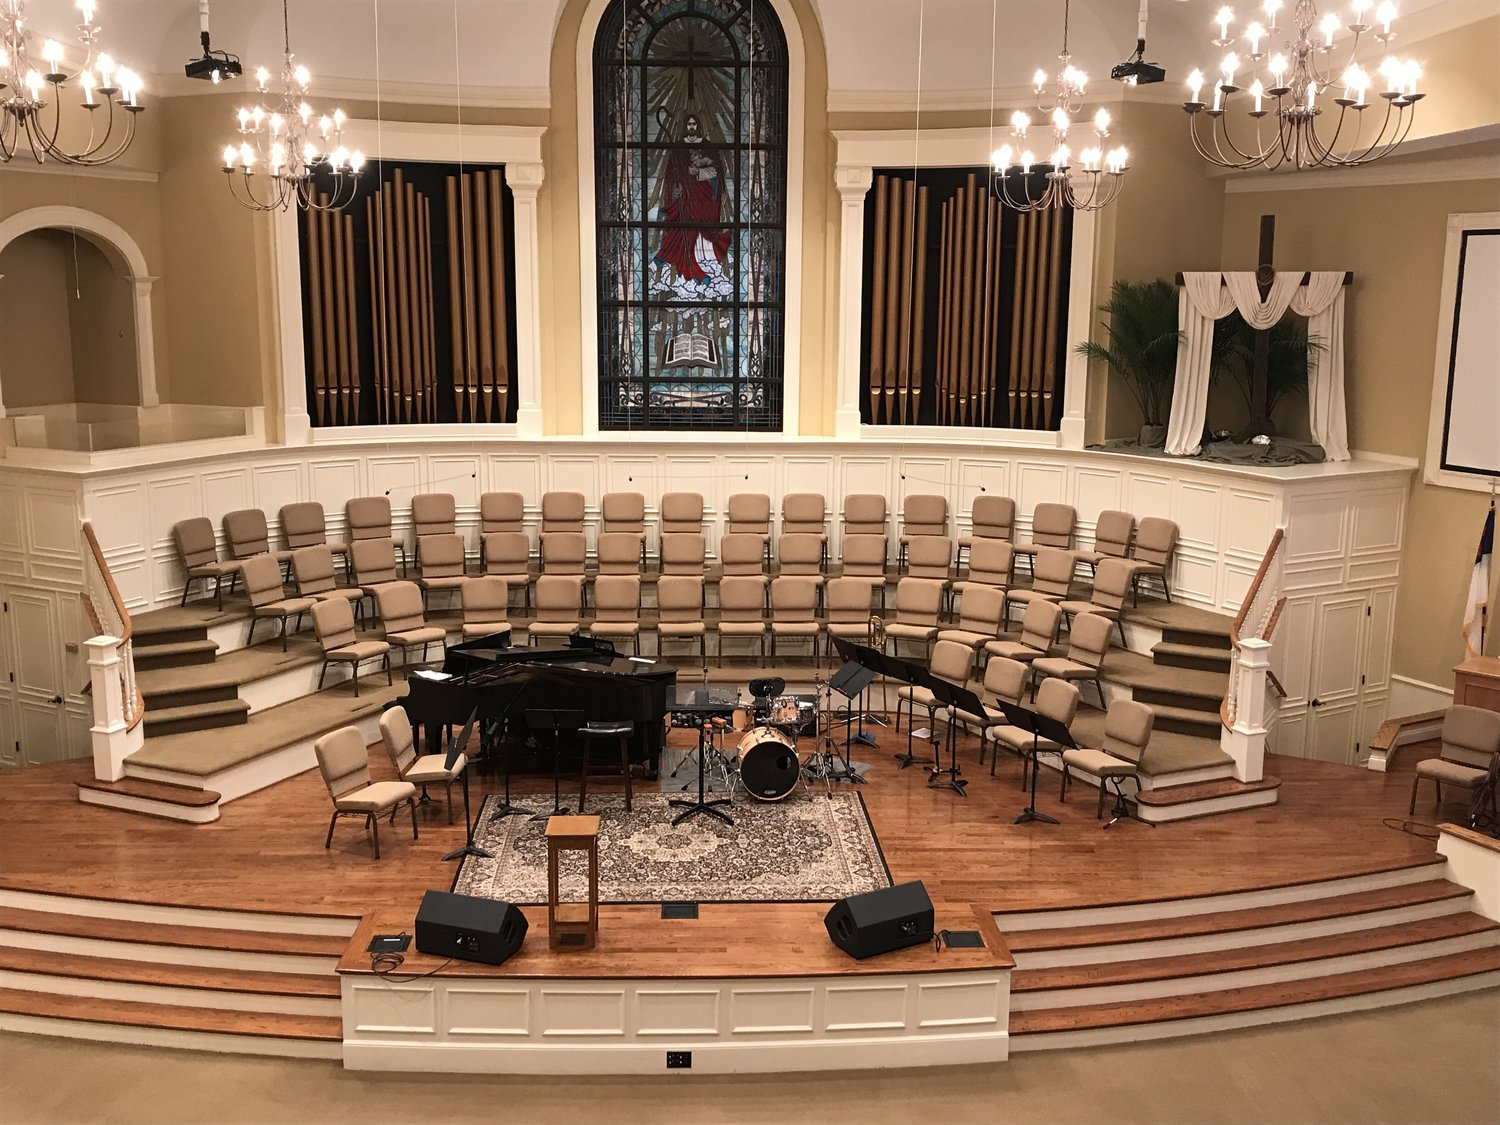 The Foutain Inn First baptist church performance stage